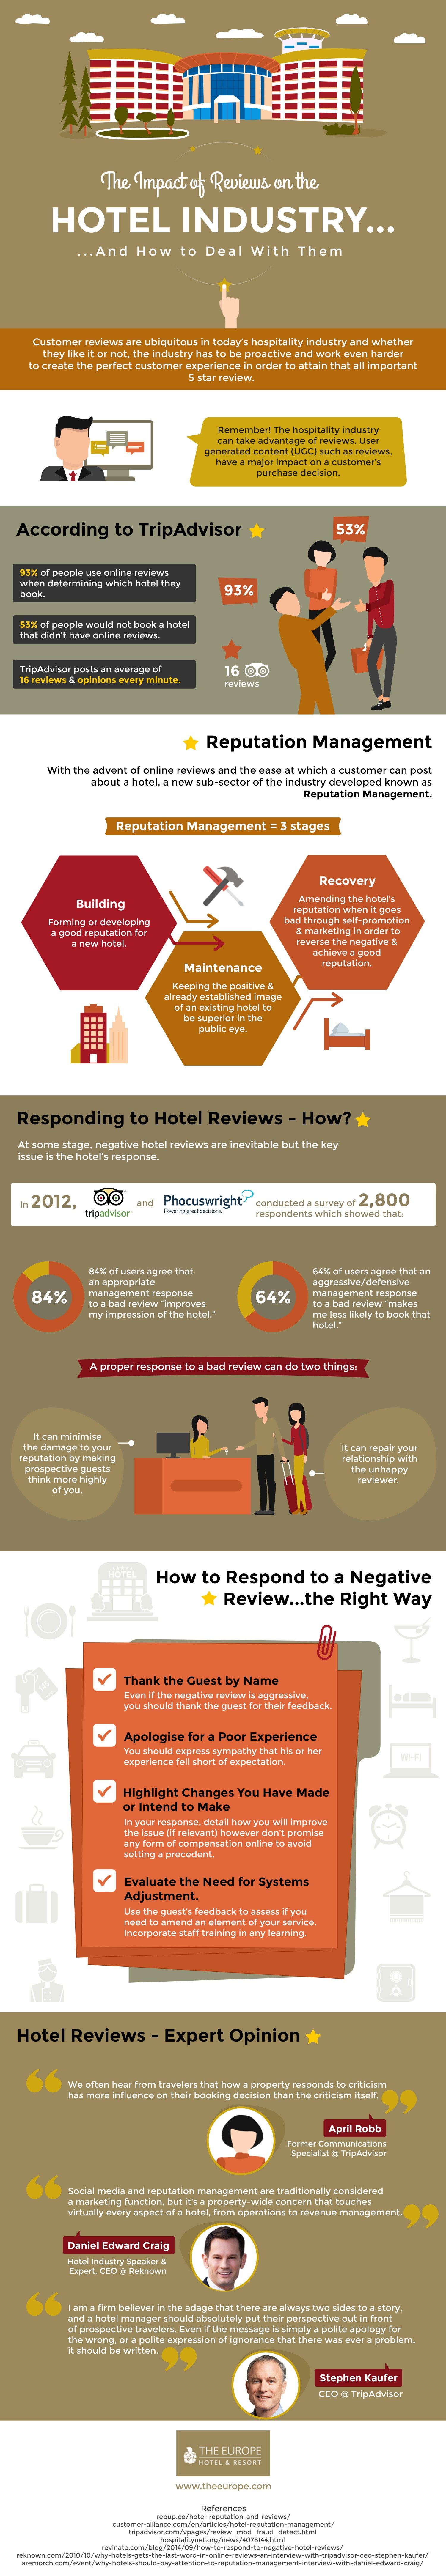 The-Importance-of-Hotel-Reviews-high-resolution.jpg